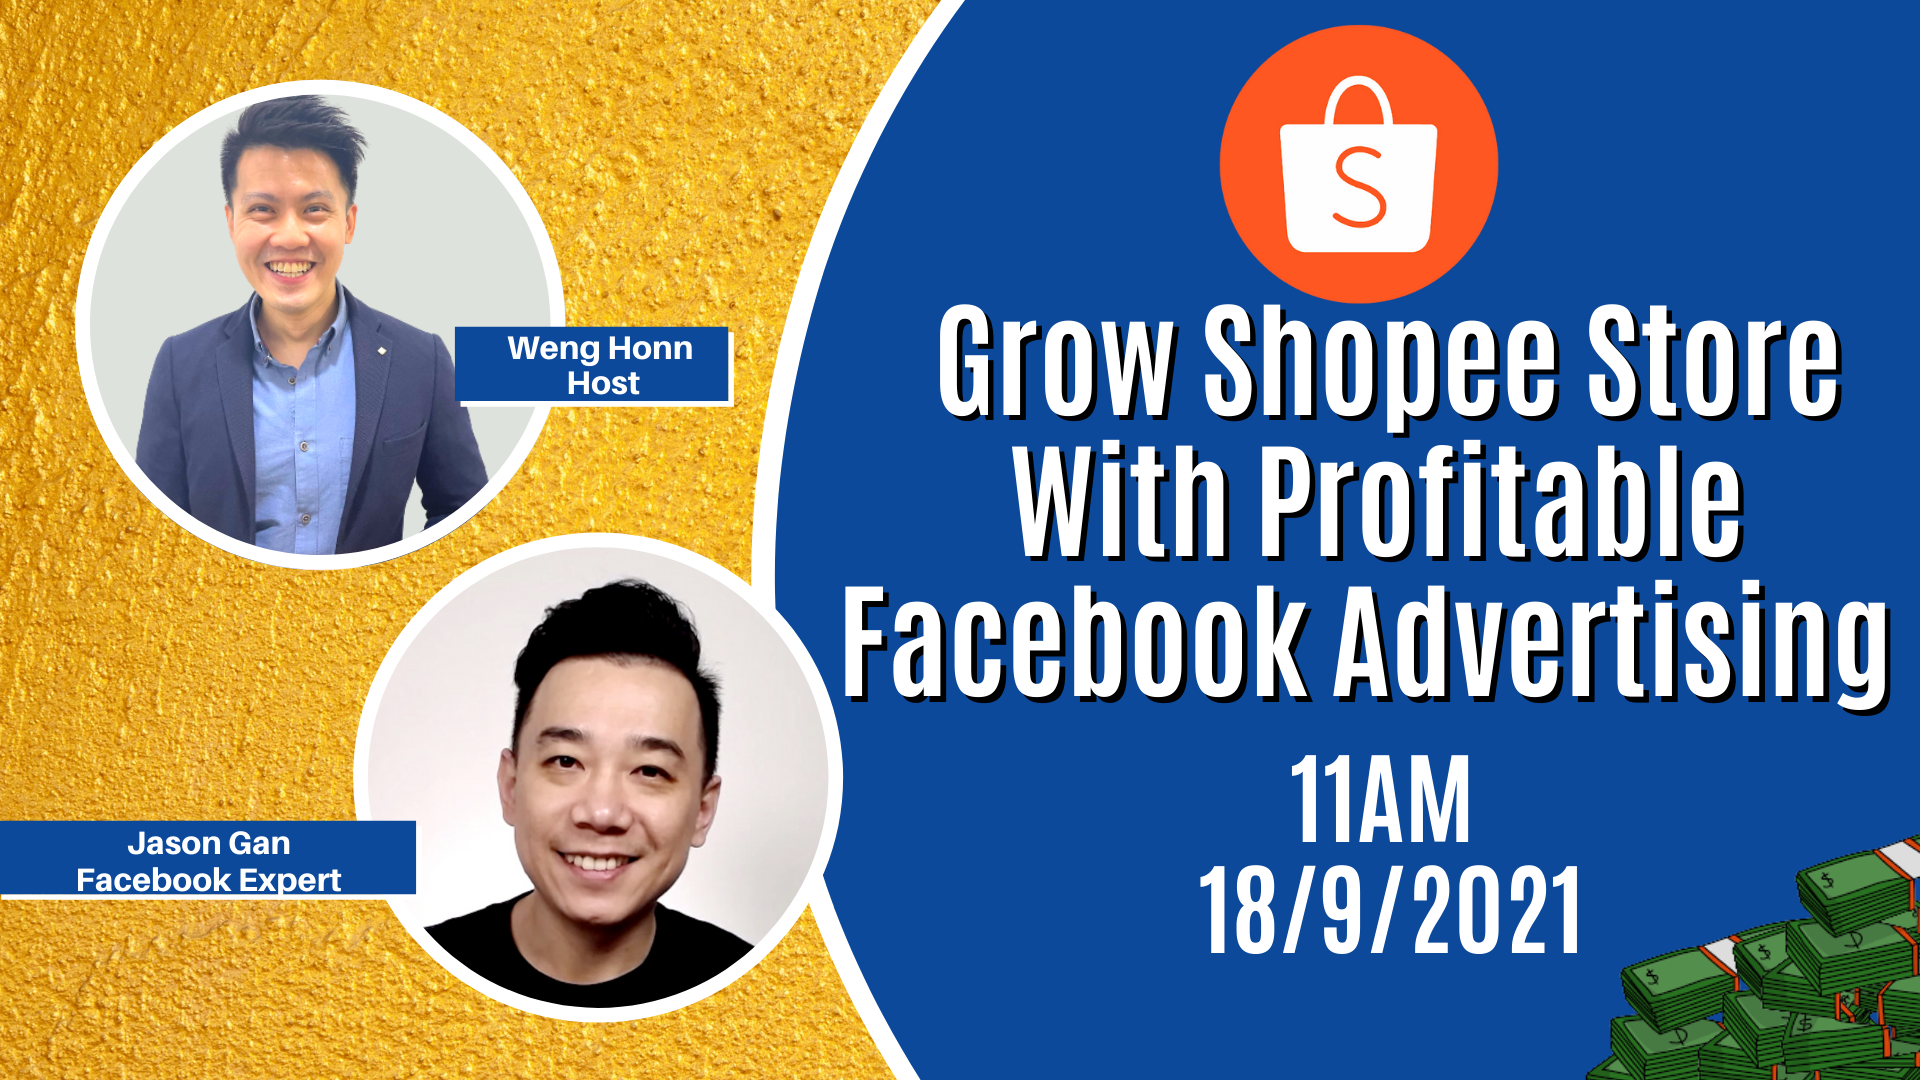 How to Grow Shopee Store With Profitable Facebook Advertising 2021